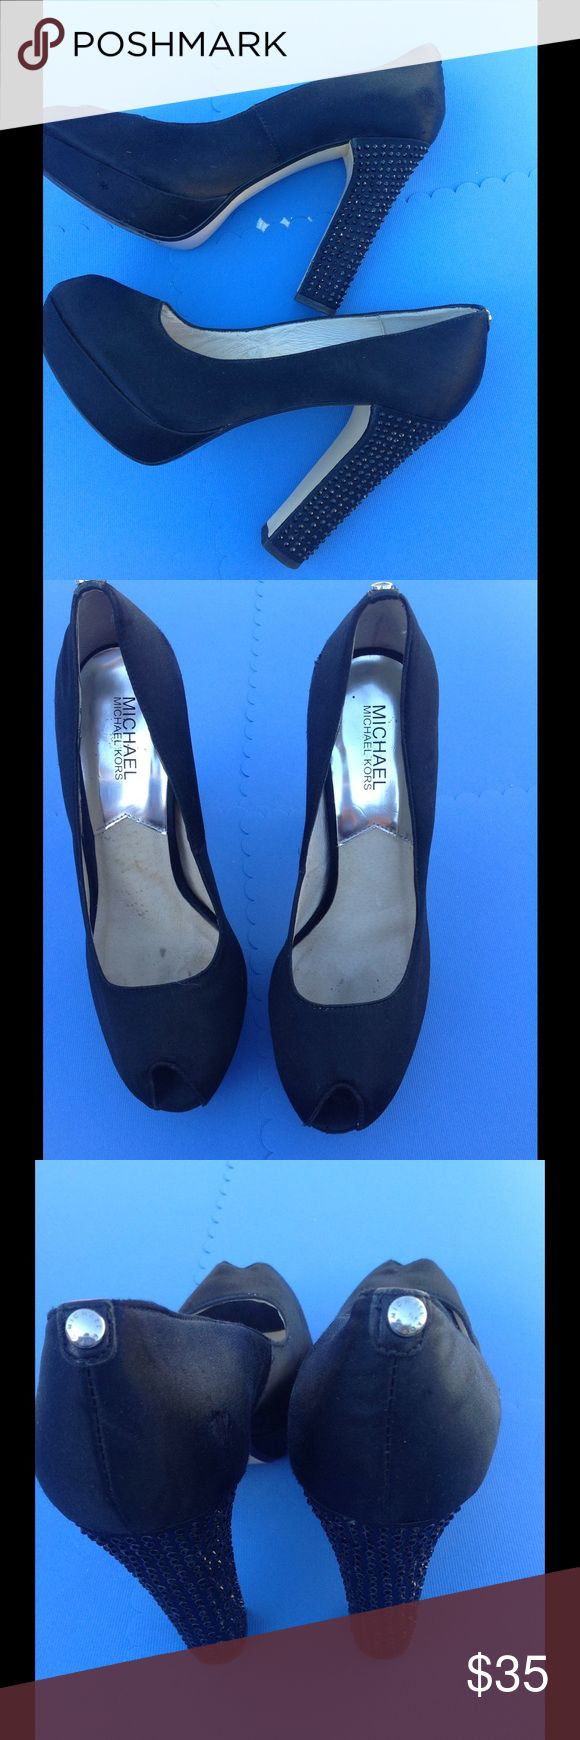 """Michael KORS Satin Crystal Bling Heels Pumps So adorable!!!!! Michael Kors """"Nadia"""" heel. Black satin, peep toe, Heavily embellished. MK logo circle on heel,  """"these shoes have been worn and have a scuffed area,,, see pic 3 ....  Heels are 5"""" Michael Kors Shoes Platforms"""